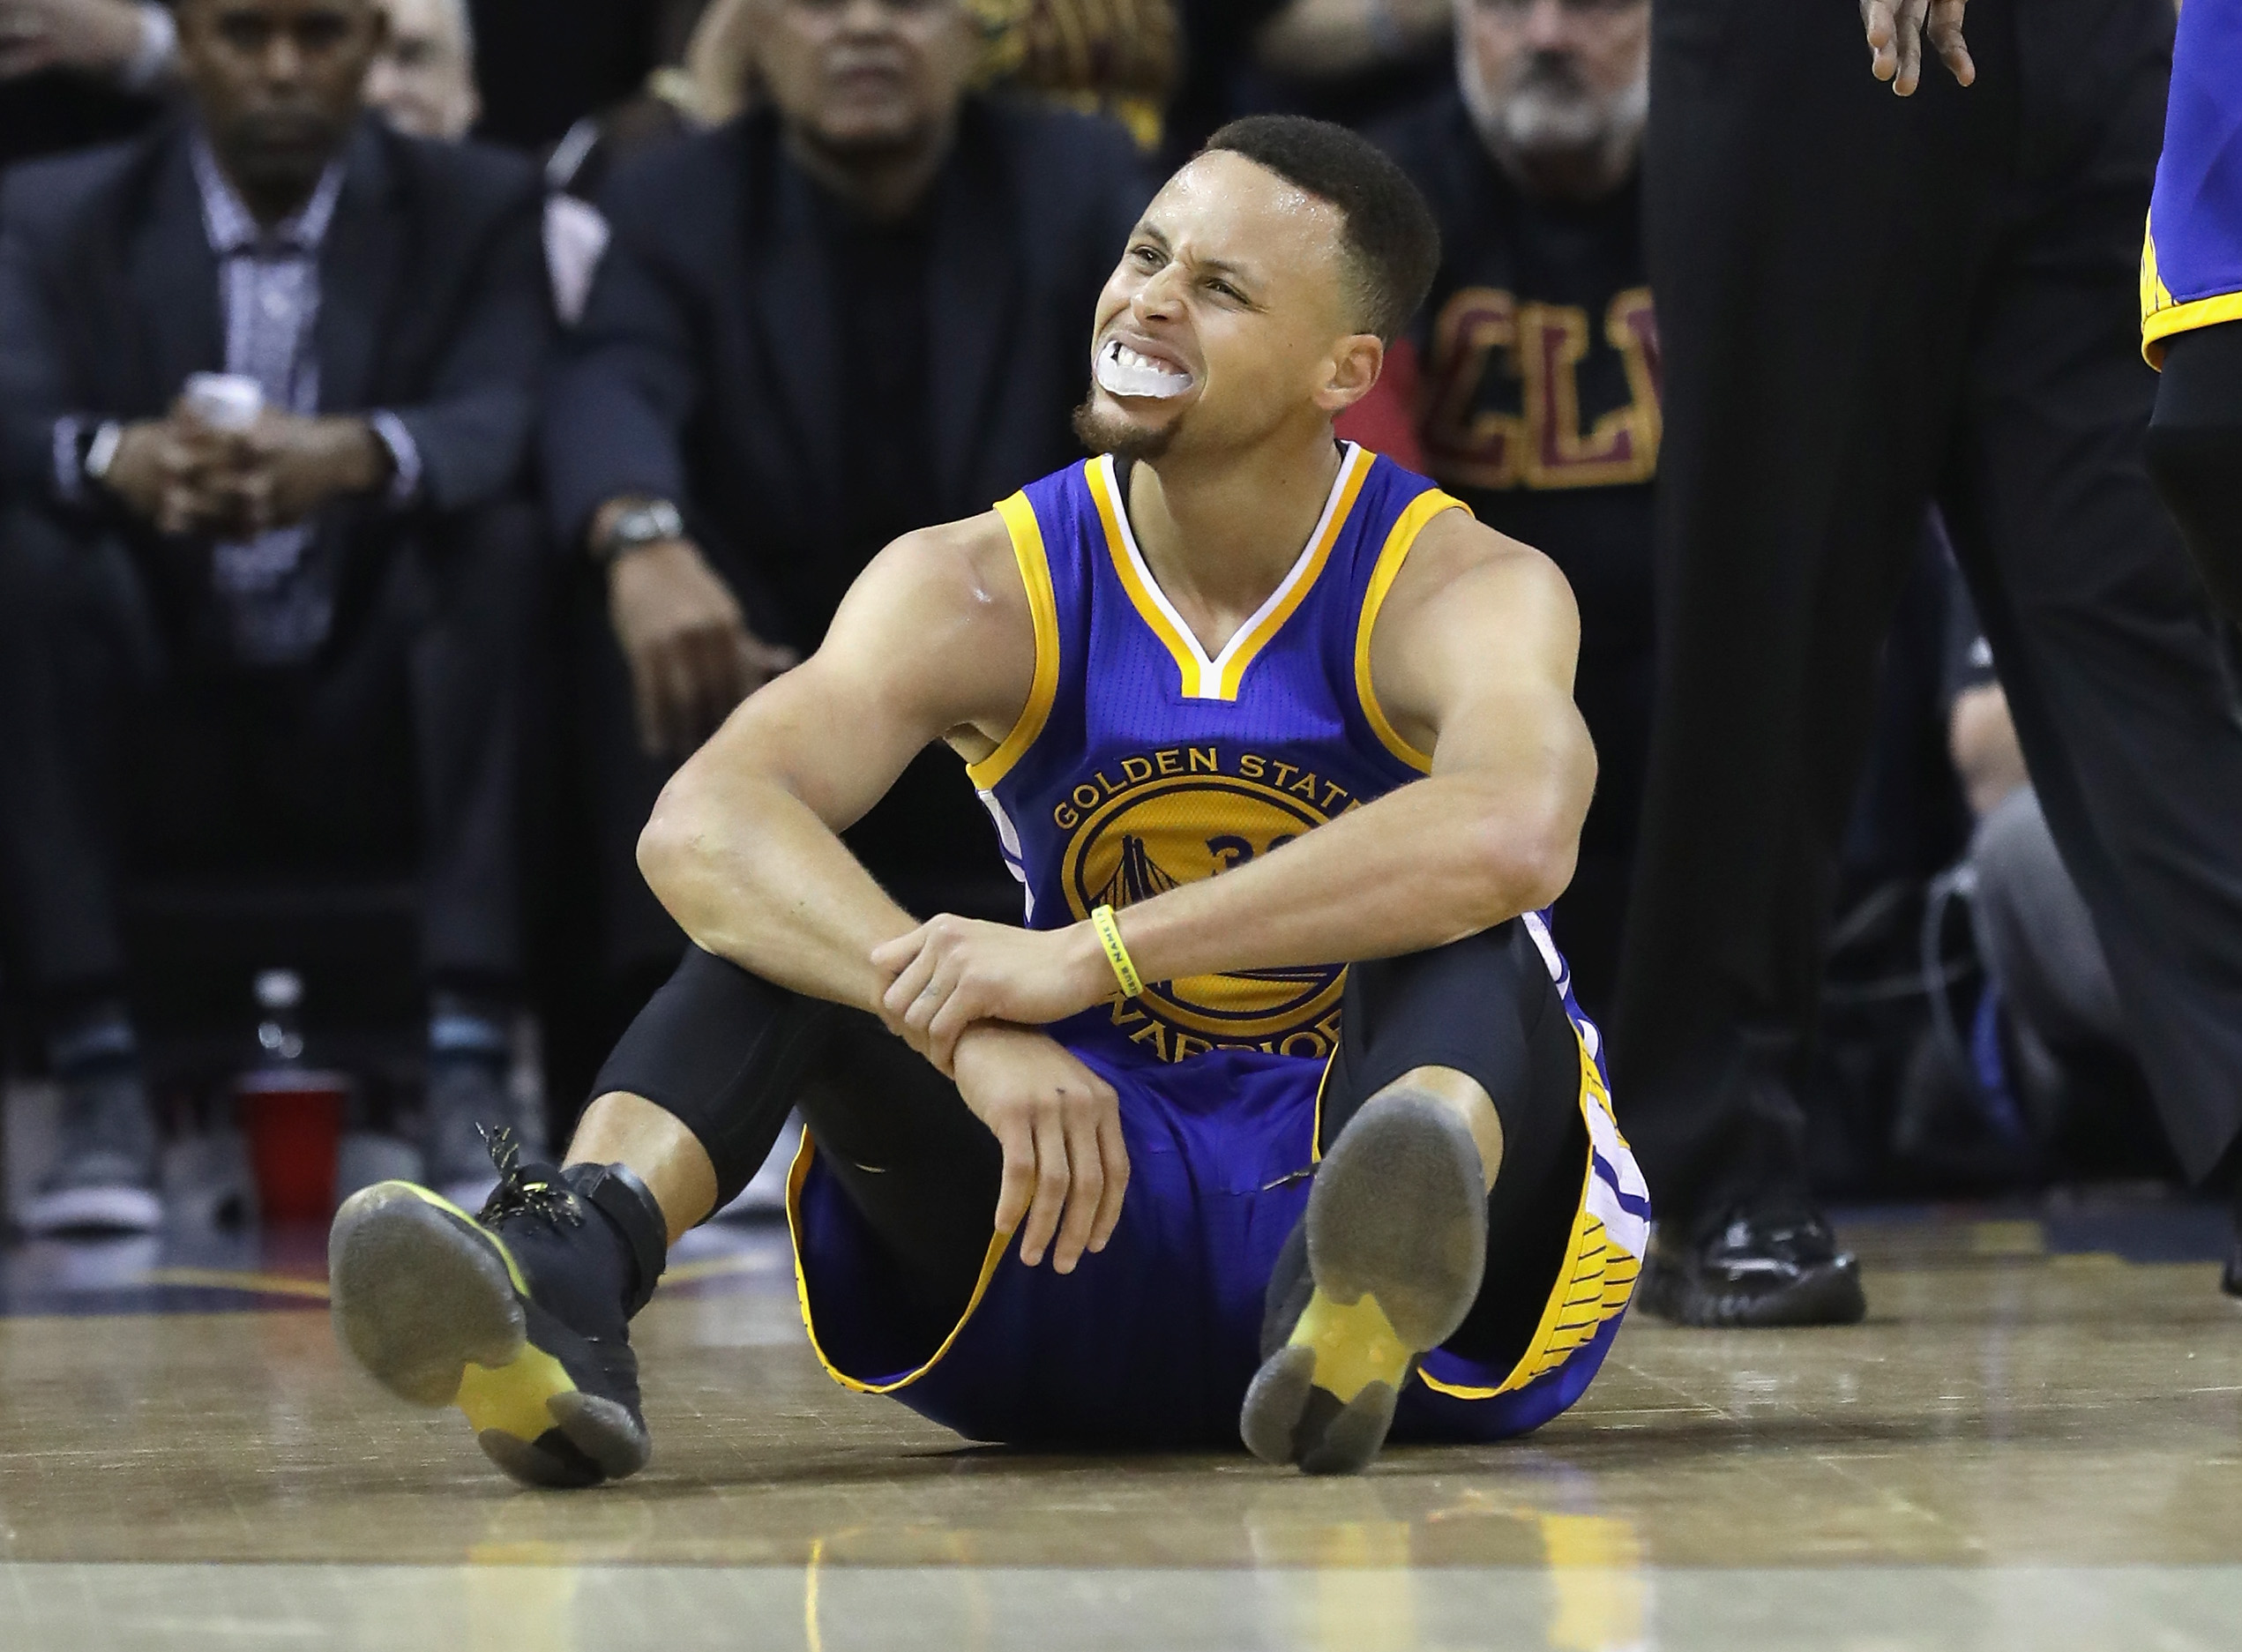 Stephen Curry of the Golden State Warriors reacts after a call in the first half against the Cleveland Cavaliers in Game 6 of the 2016 NBA Finals at Quicken Loans Arena on June 16, 2016 in Cleveland, Ohio.